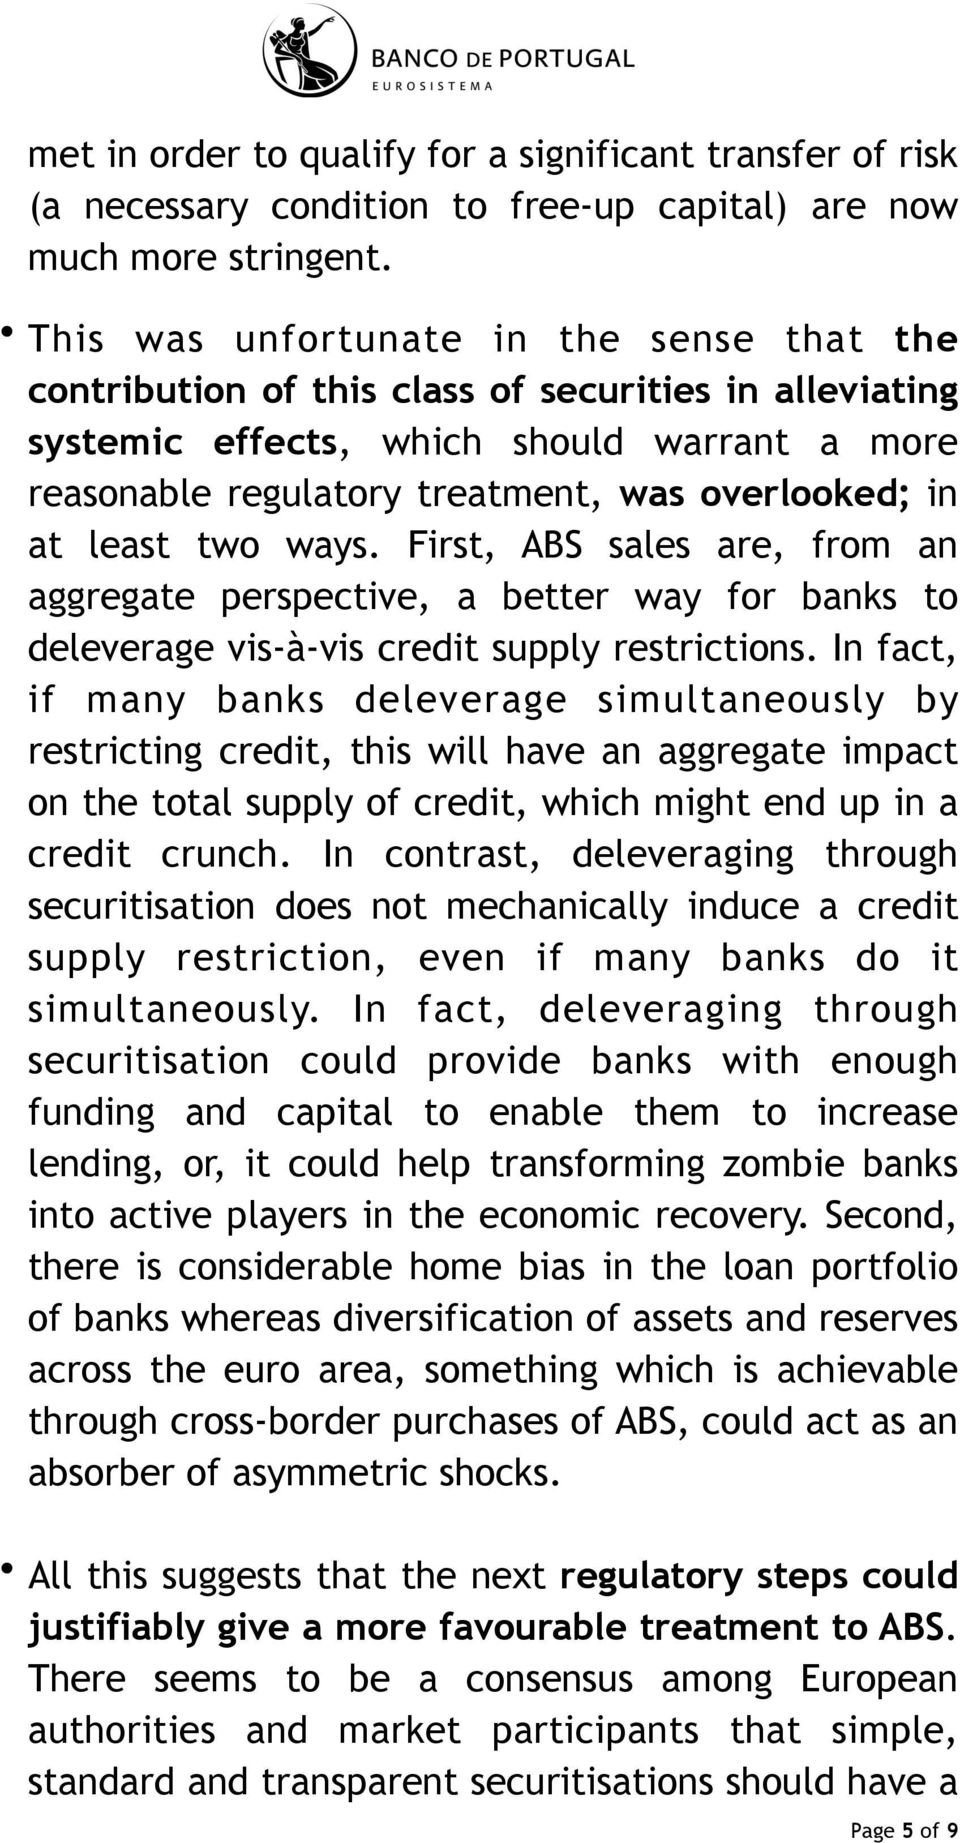 least two ways. First, ABS sales are, from an aggregate perspective, a better way for banks to deleverage vis-à-vis credit supply restrictions.